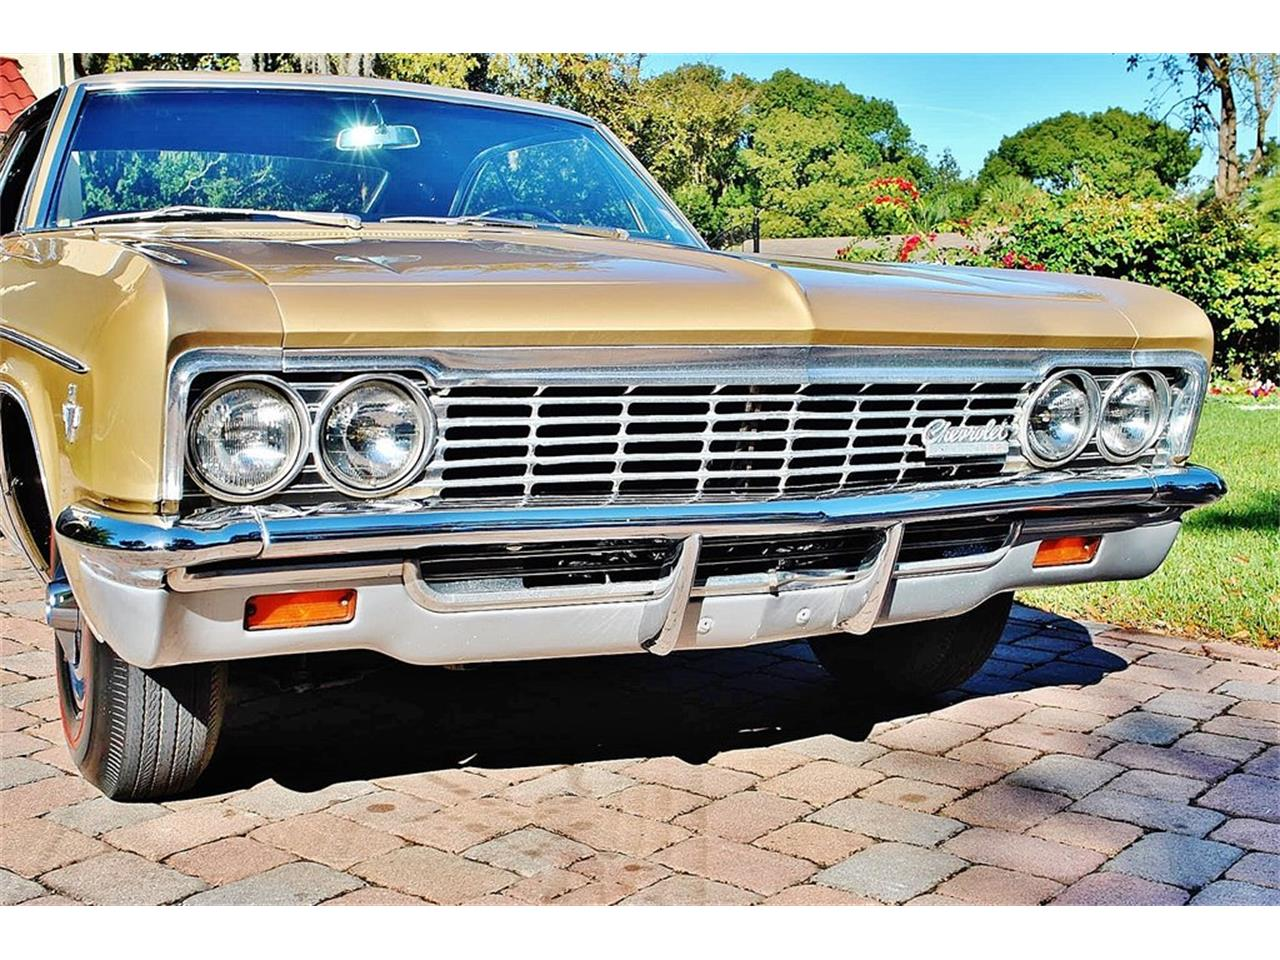 1966 Chevrolet Impala SS for sale in Lakeland, FL – photo 6